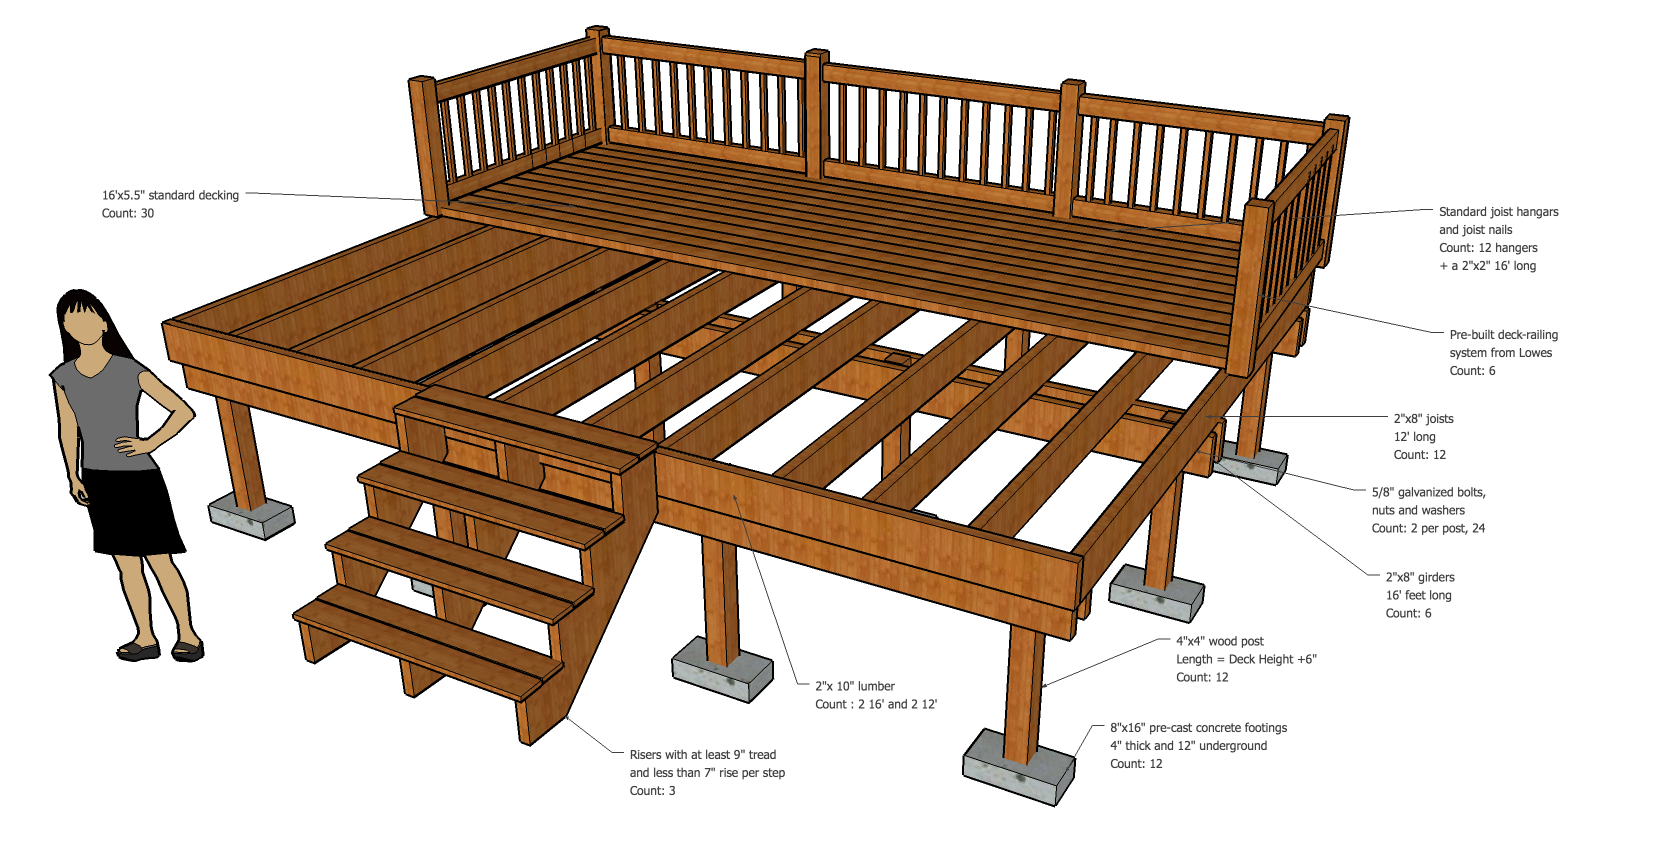 Deck Project Ideas A Z Guide To Deck Projects And Improvements In 2020 Building A Deck Deck Design Diy Deck